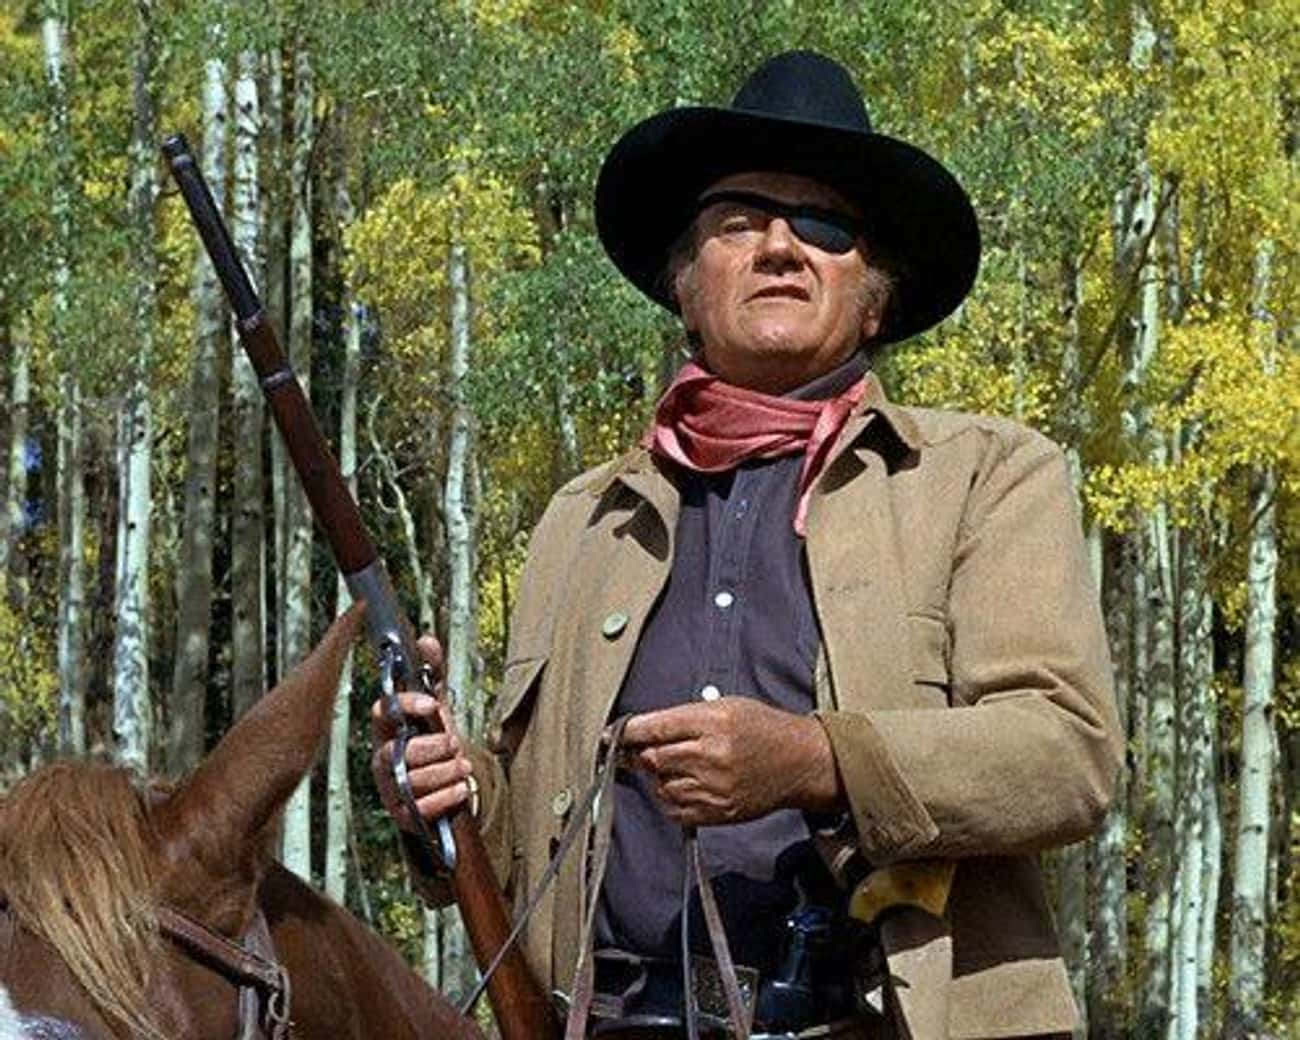 True Grit is listed (or ranked) 3 on the list Wild West Movies That Are Probably More Fun Than Going Out On A Friday Night